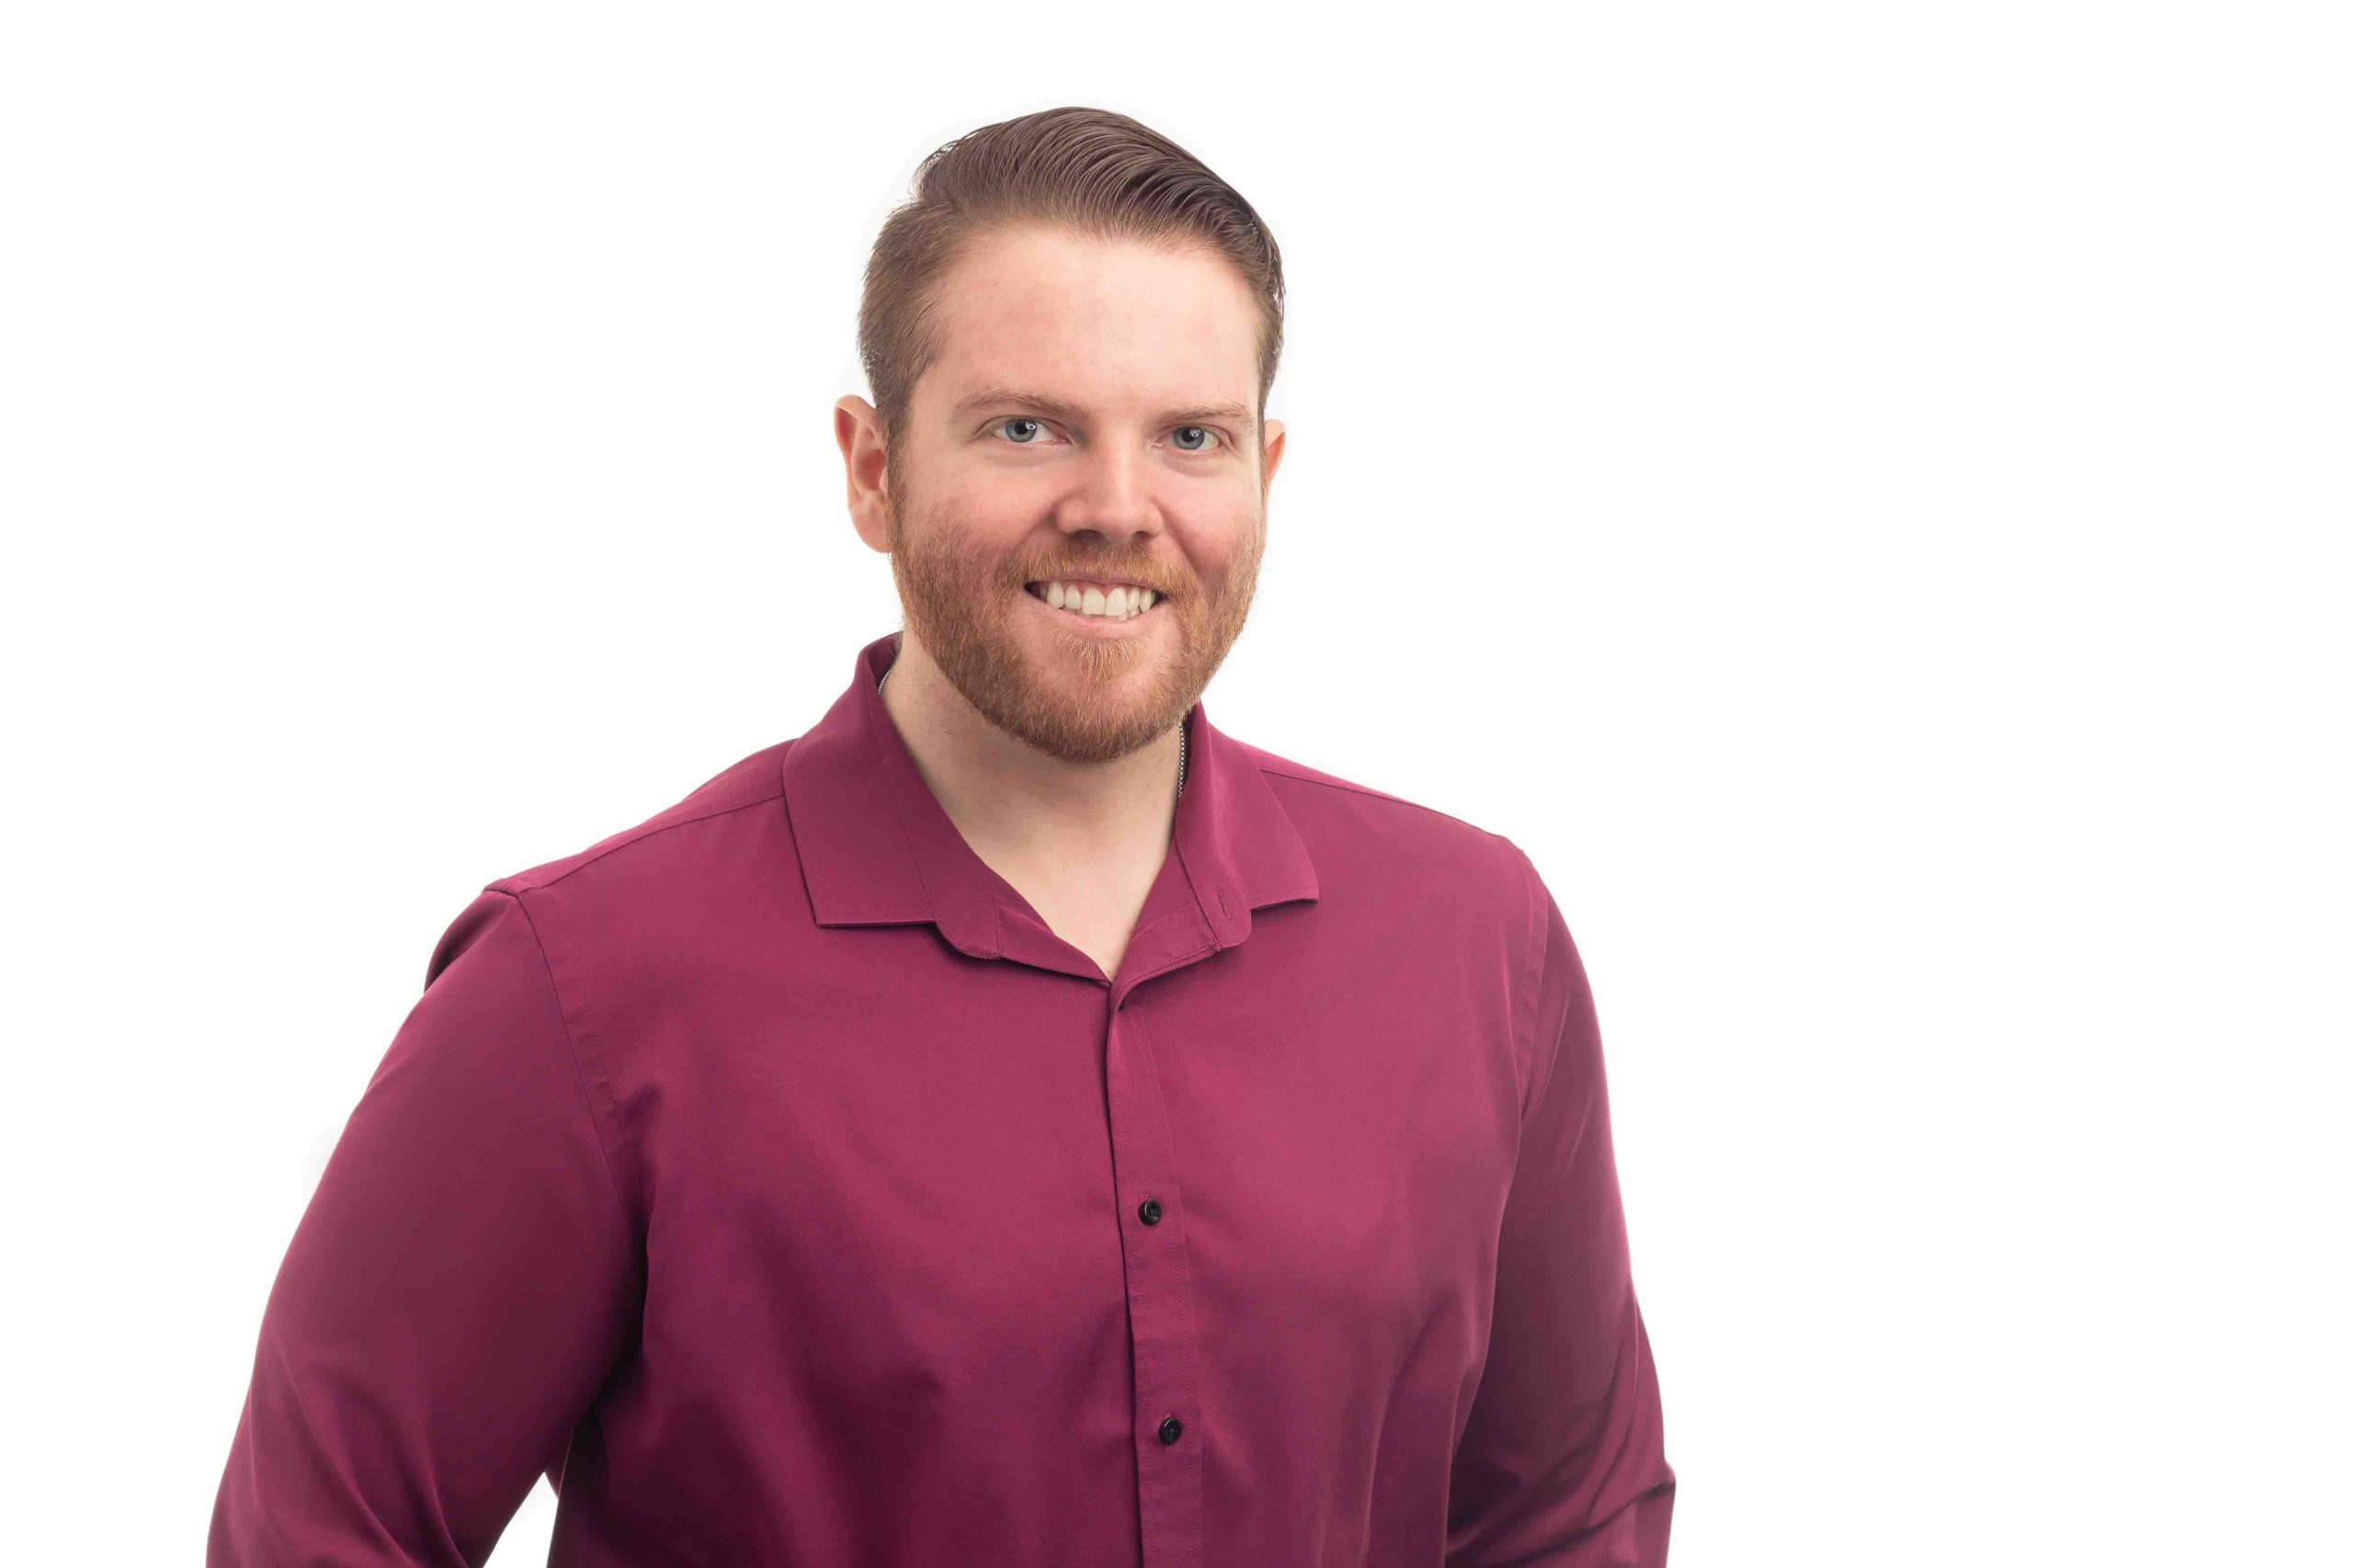 Cole Halpin, Director of Avitus Technology Services